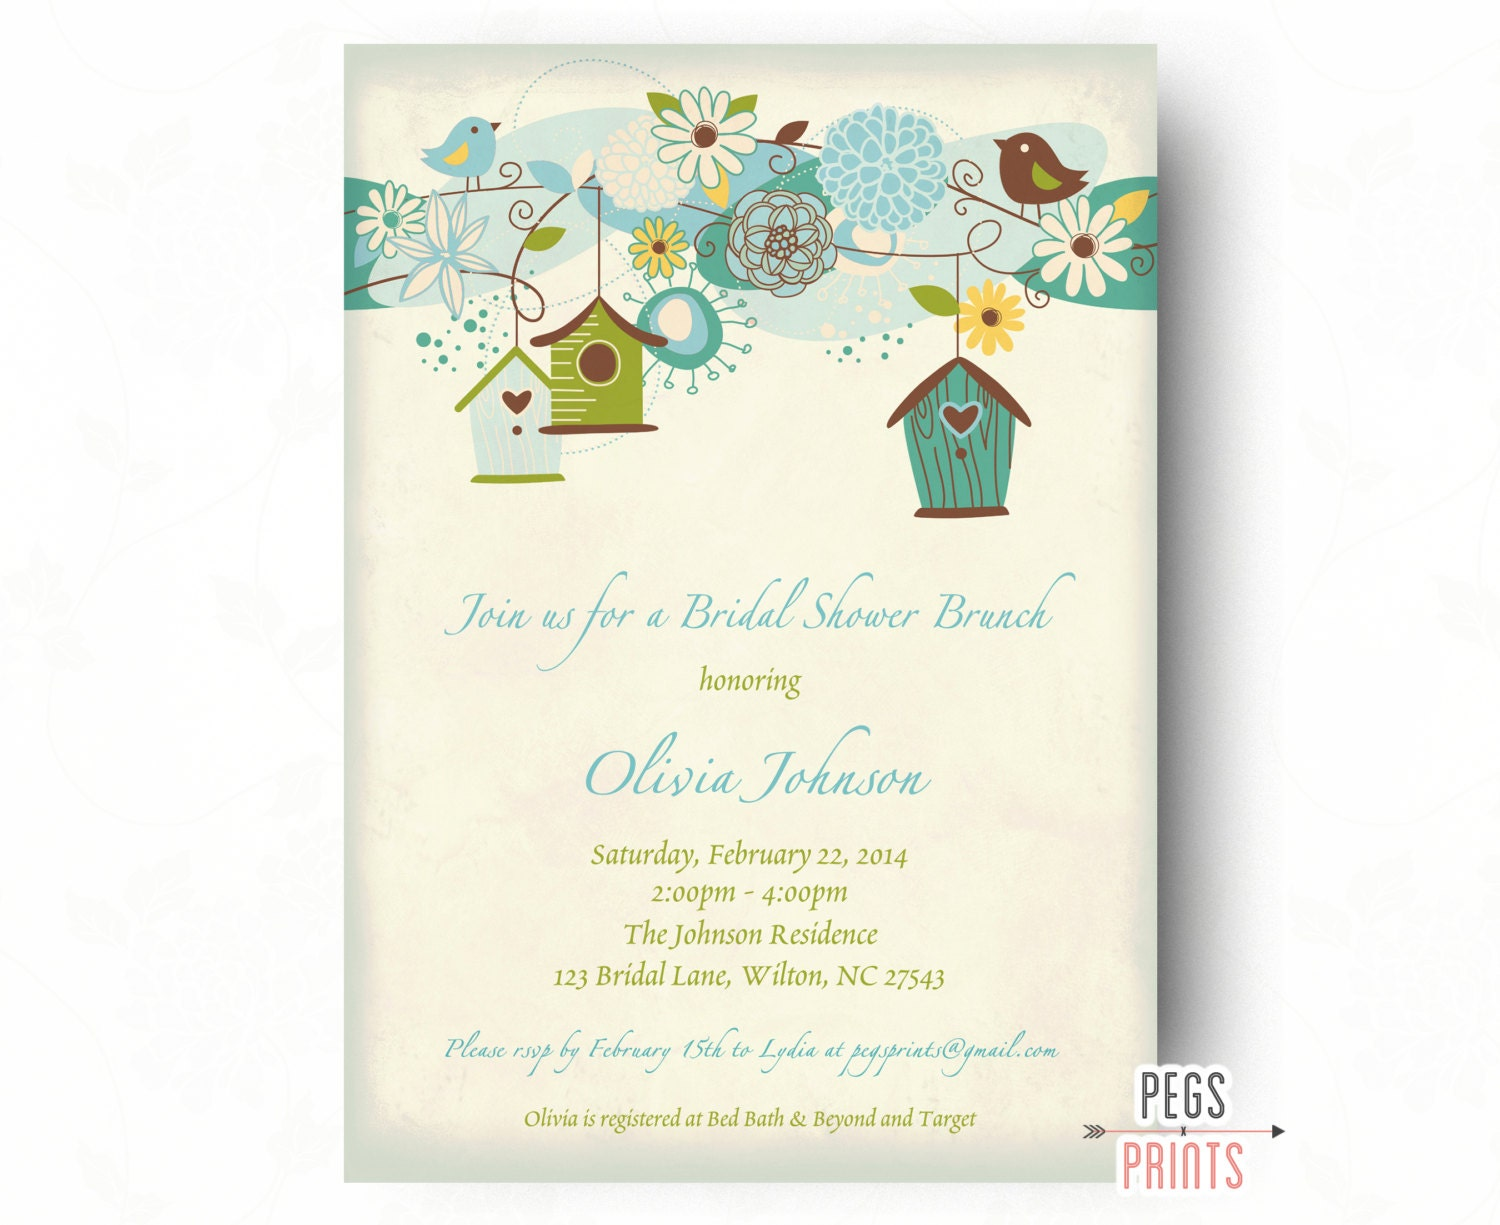 Bridal shower brunch invitation printable bridal brunch for Wedding brunch invitations